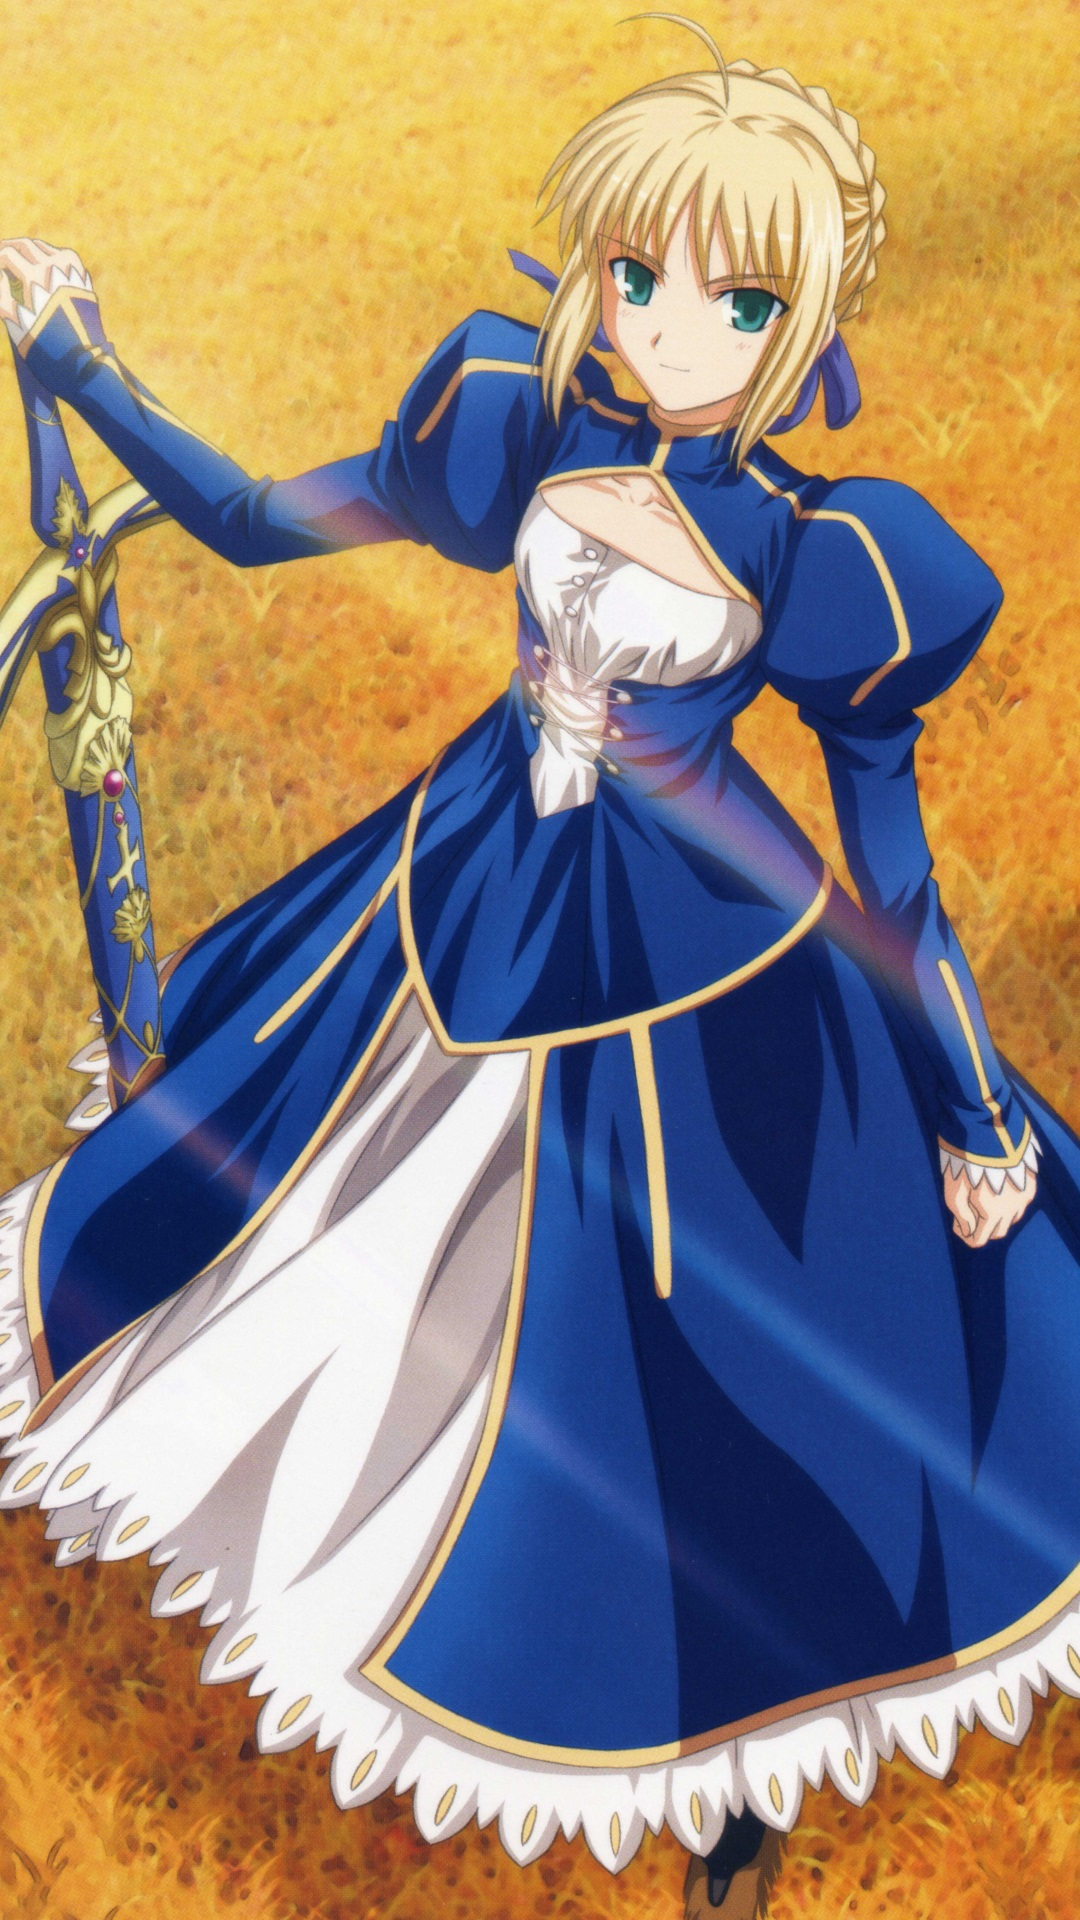 Fate Stay Night Unlimited Blade Works Saber Magic Thl W9 Wallpaper